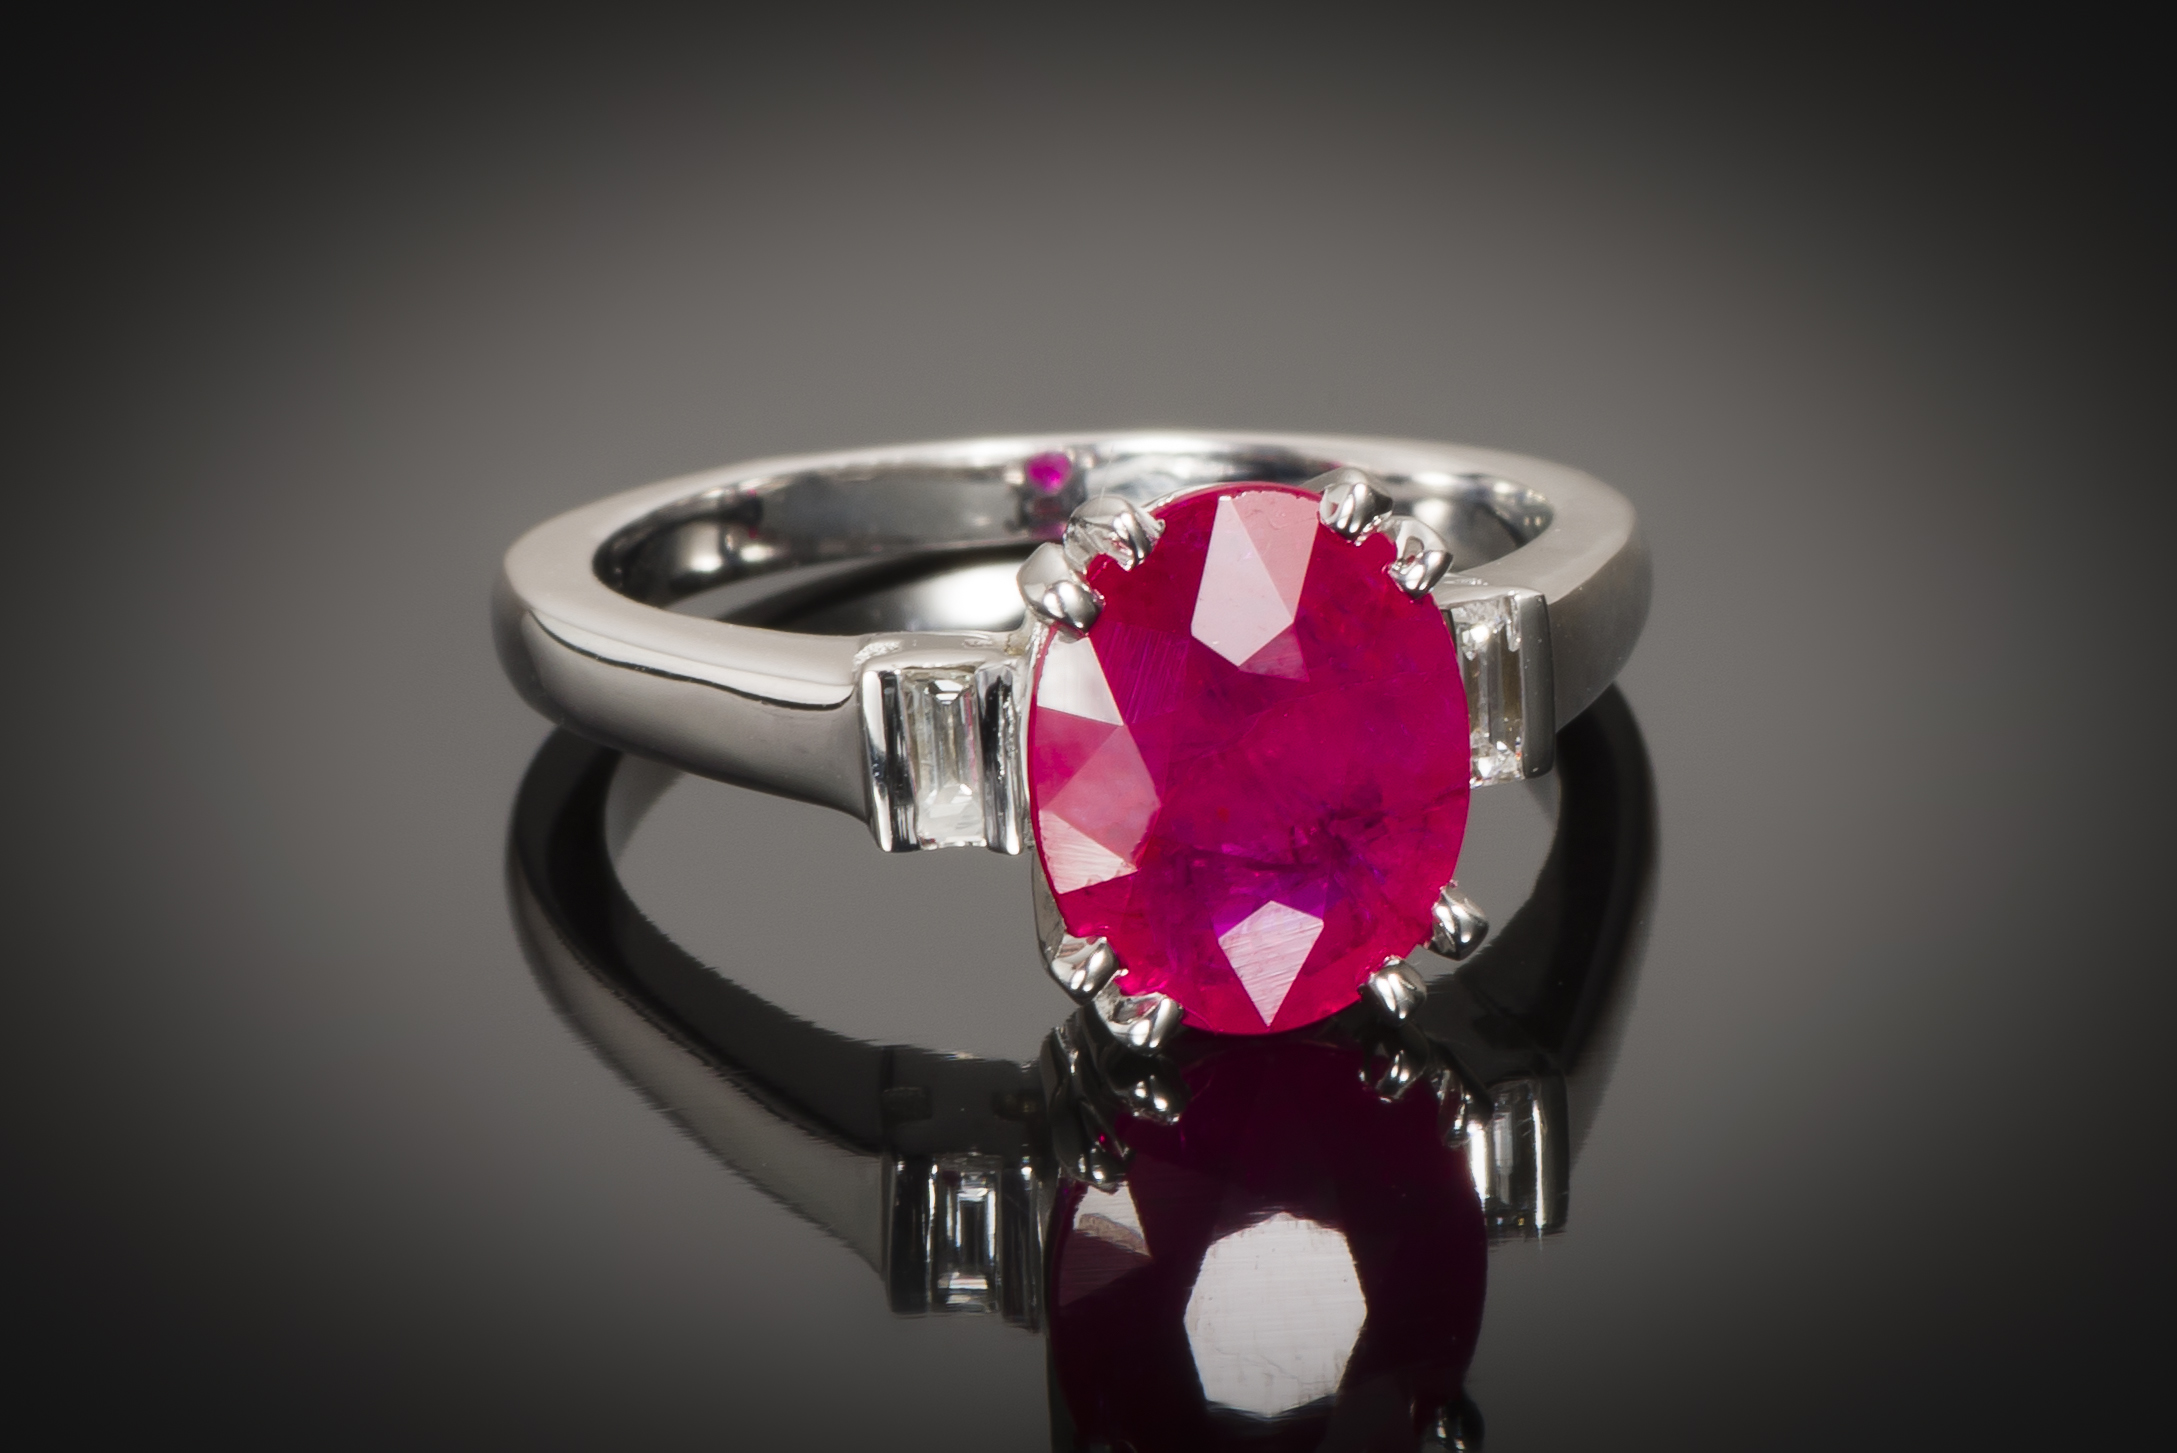 Bague rubis rouge intense (certificat CGL) diamants-1